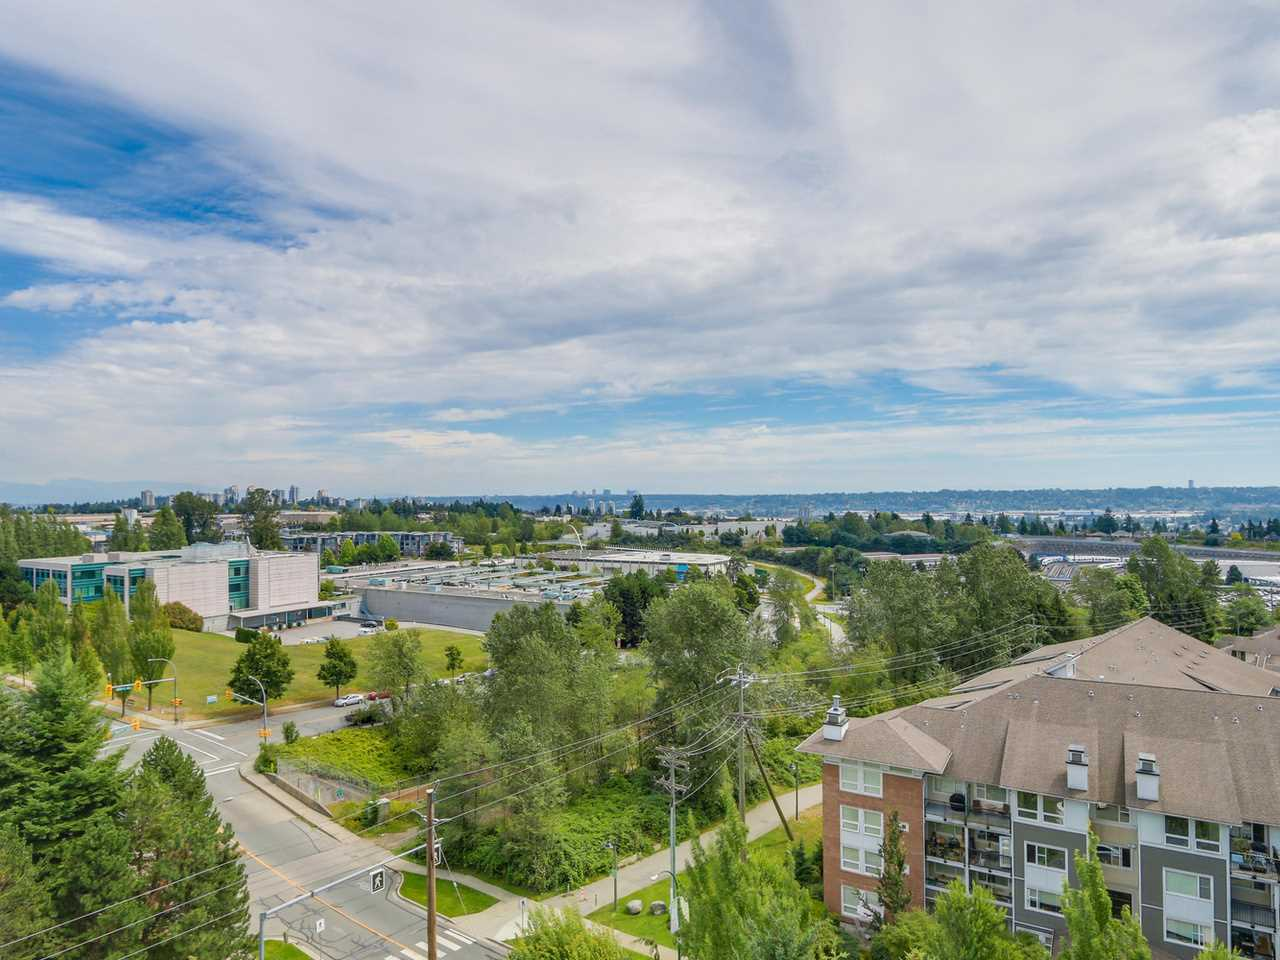 Photo 11: 1005 6888 STATION HILL Drive in Burnaby: South Slope Condo for sale (Burnaby South)  : MLS® # R2125491